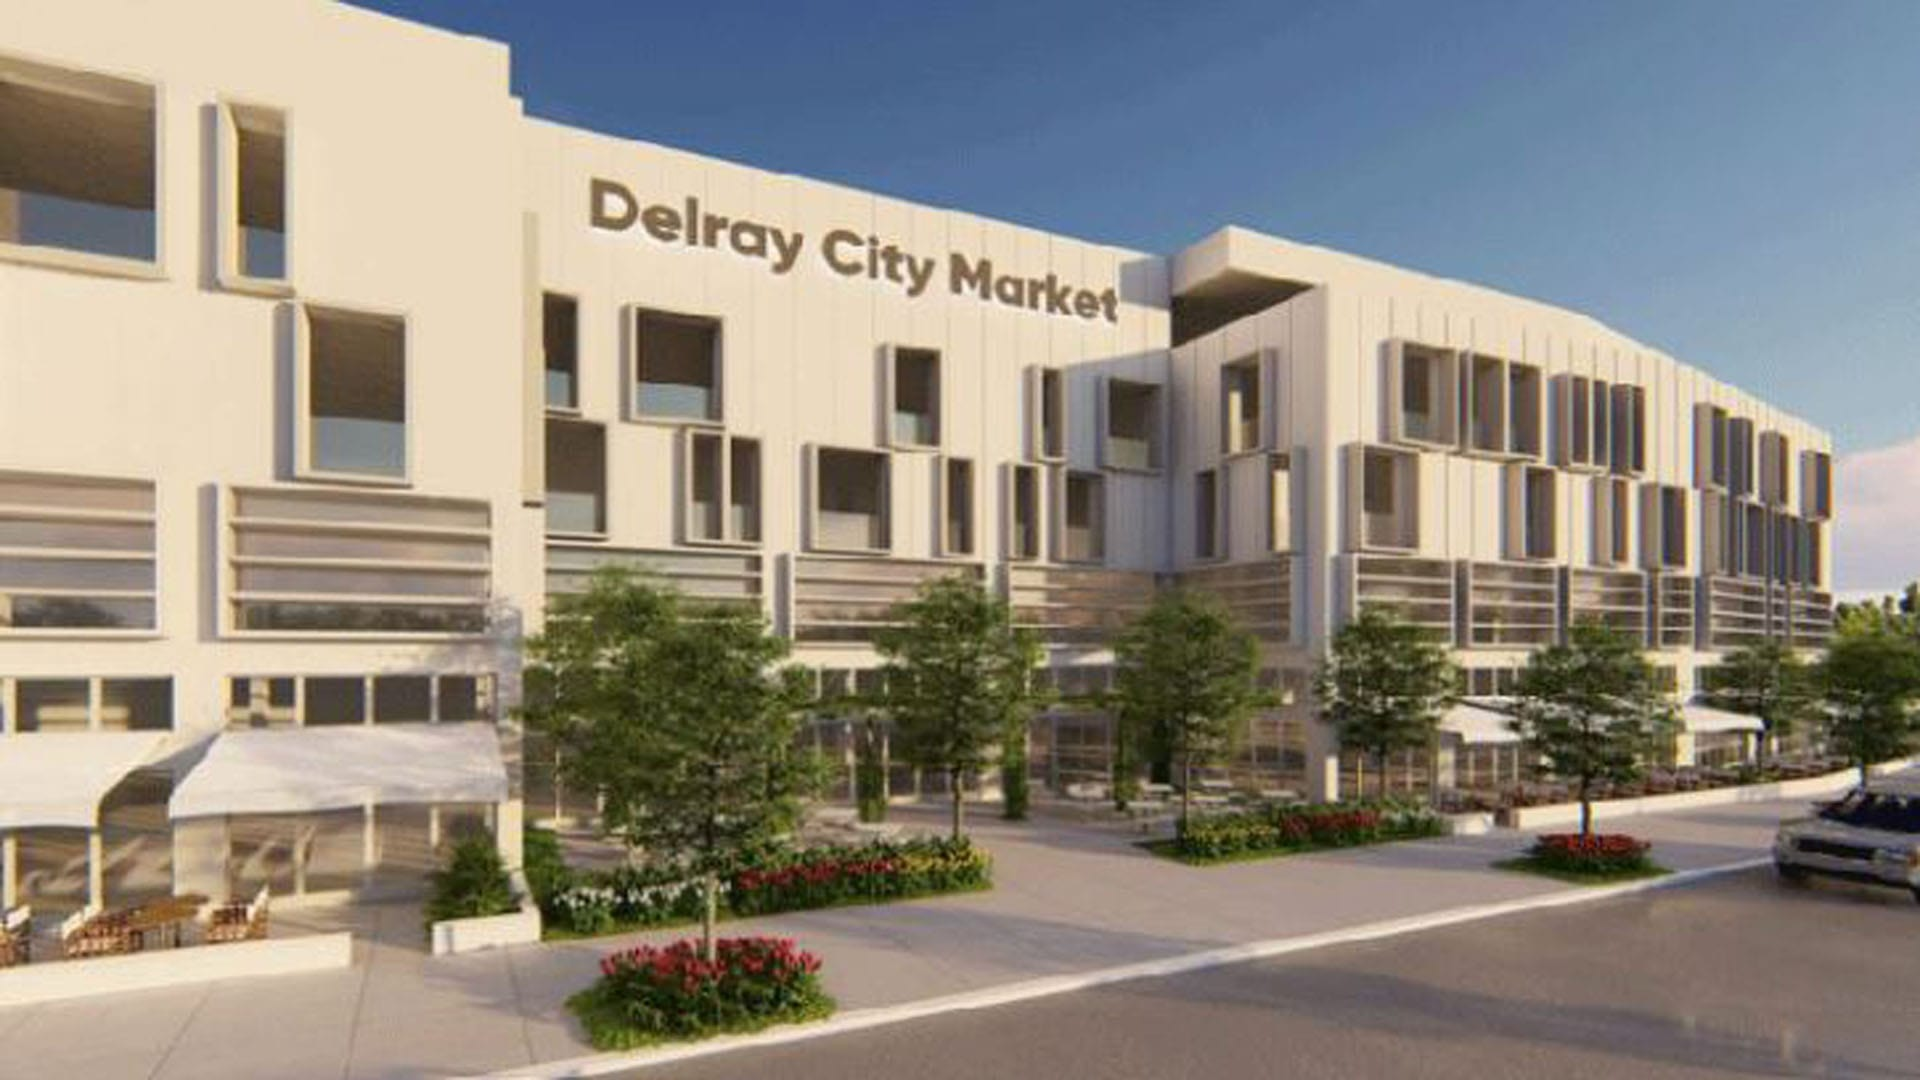 delray-market-center-min